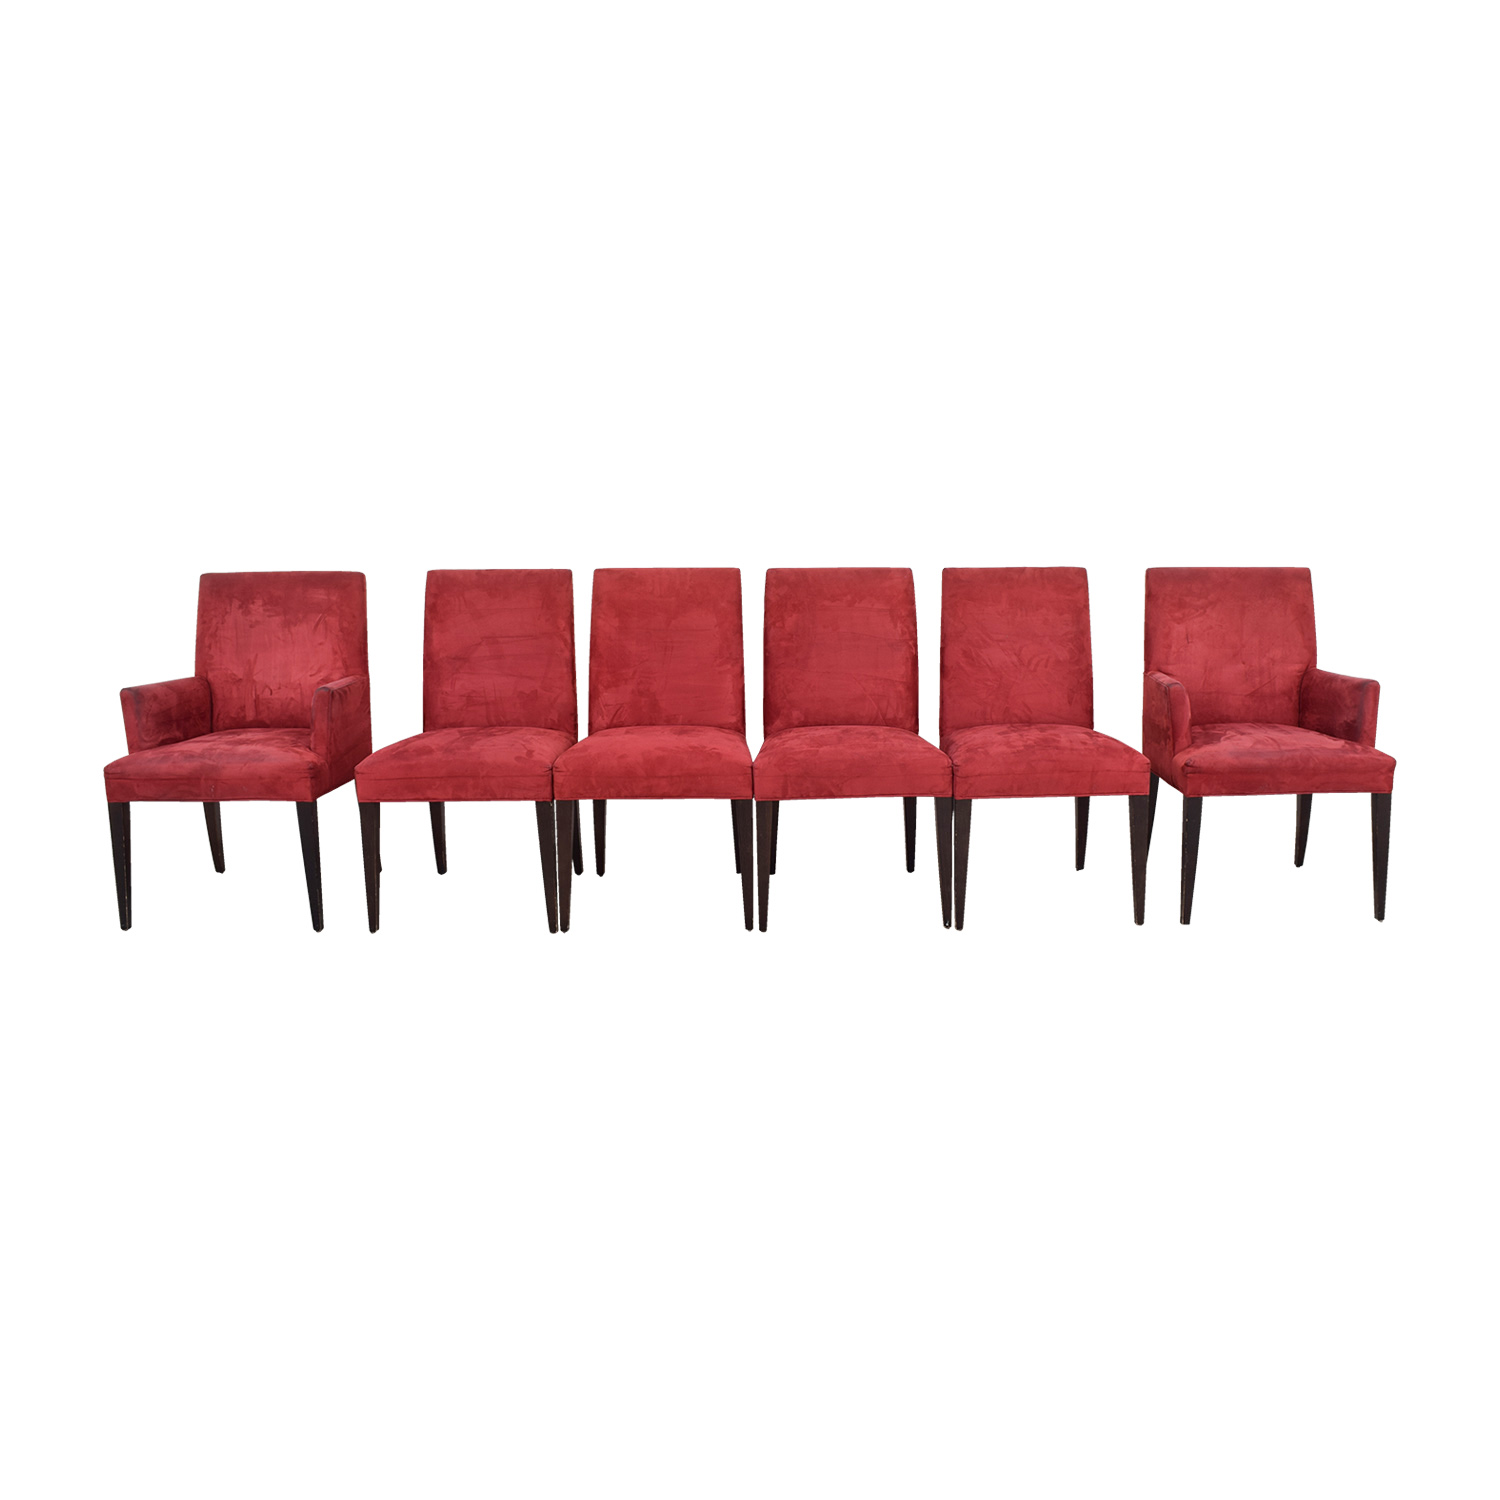 Crate & Barrel Crate & Barrel Microsuede Cranberry Chairs second hand